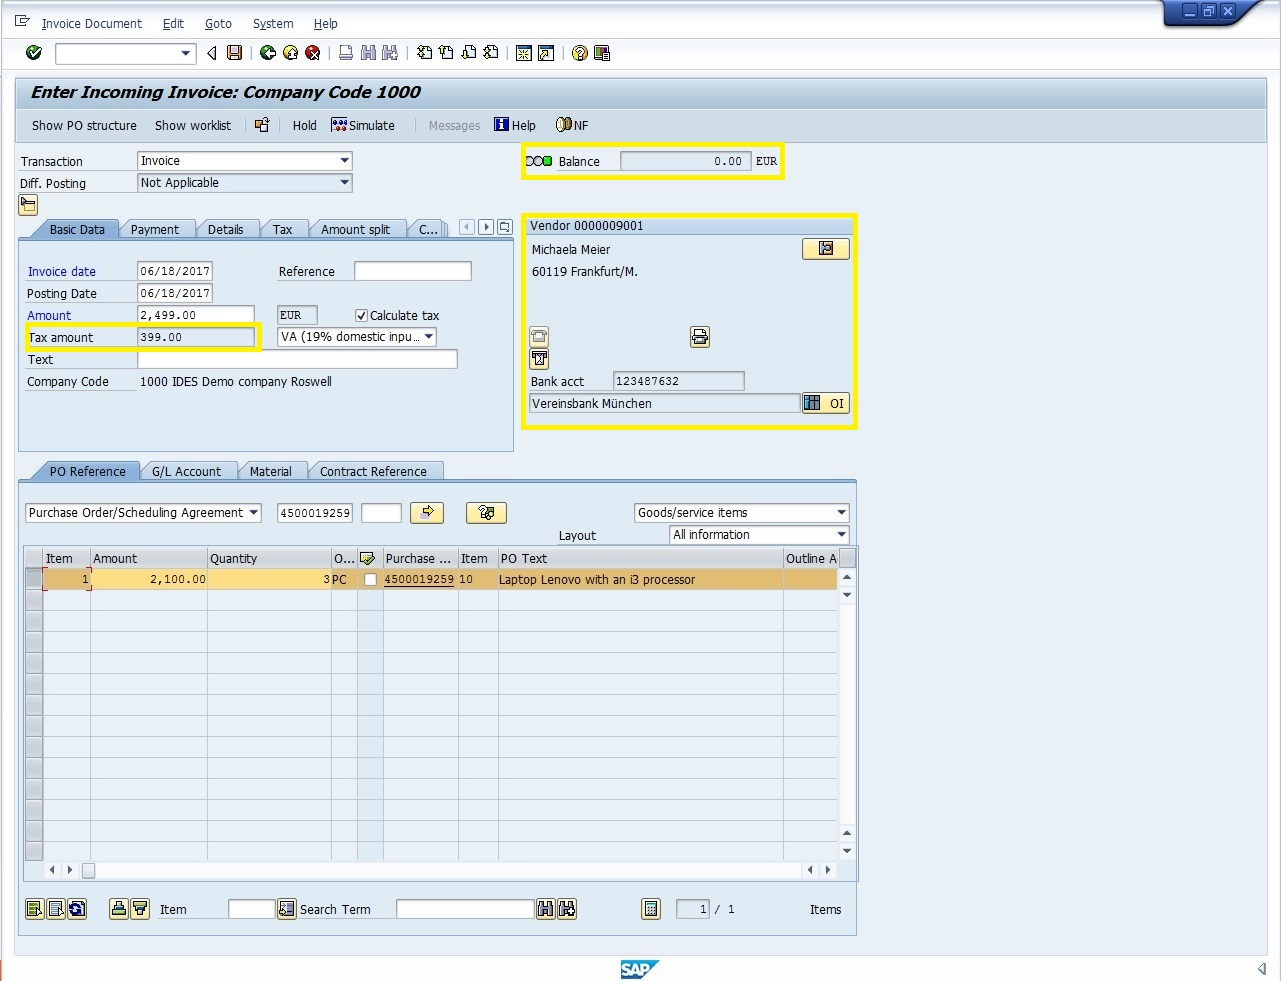 SAP Invoice Verification with Reference to a Purchase Order